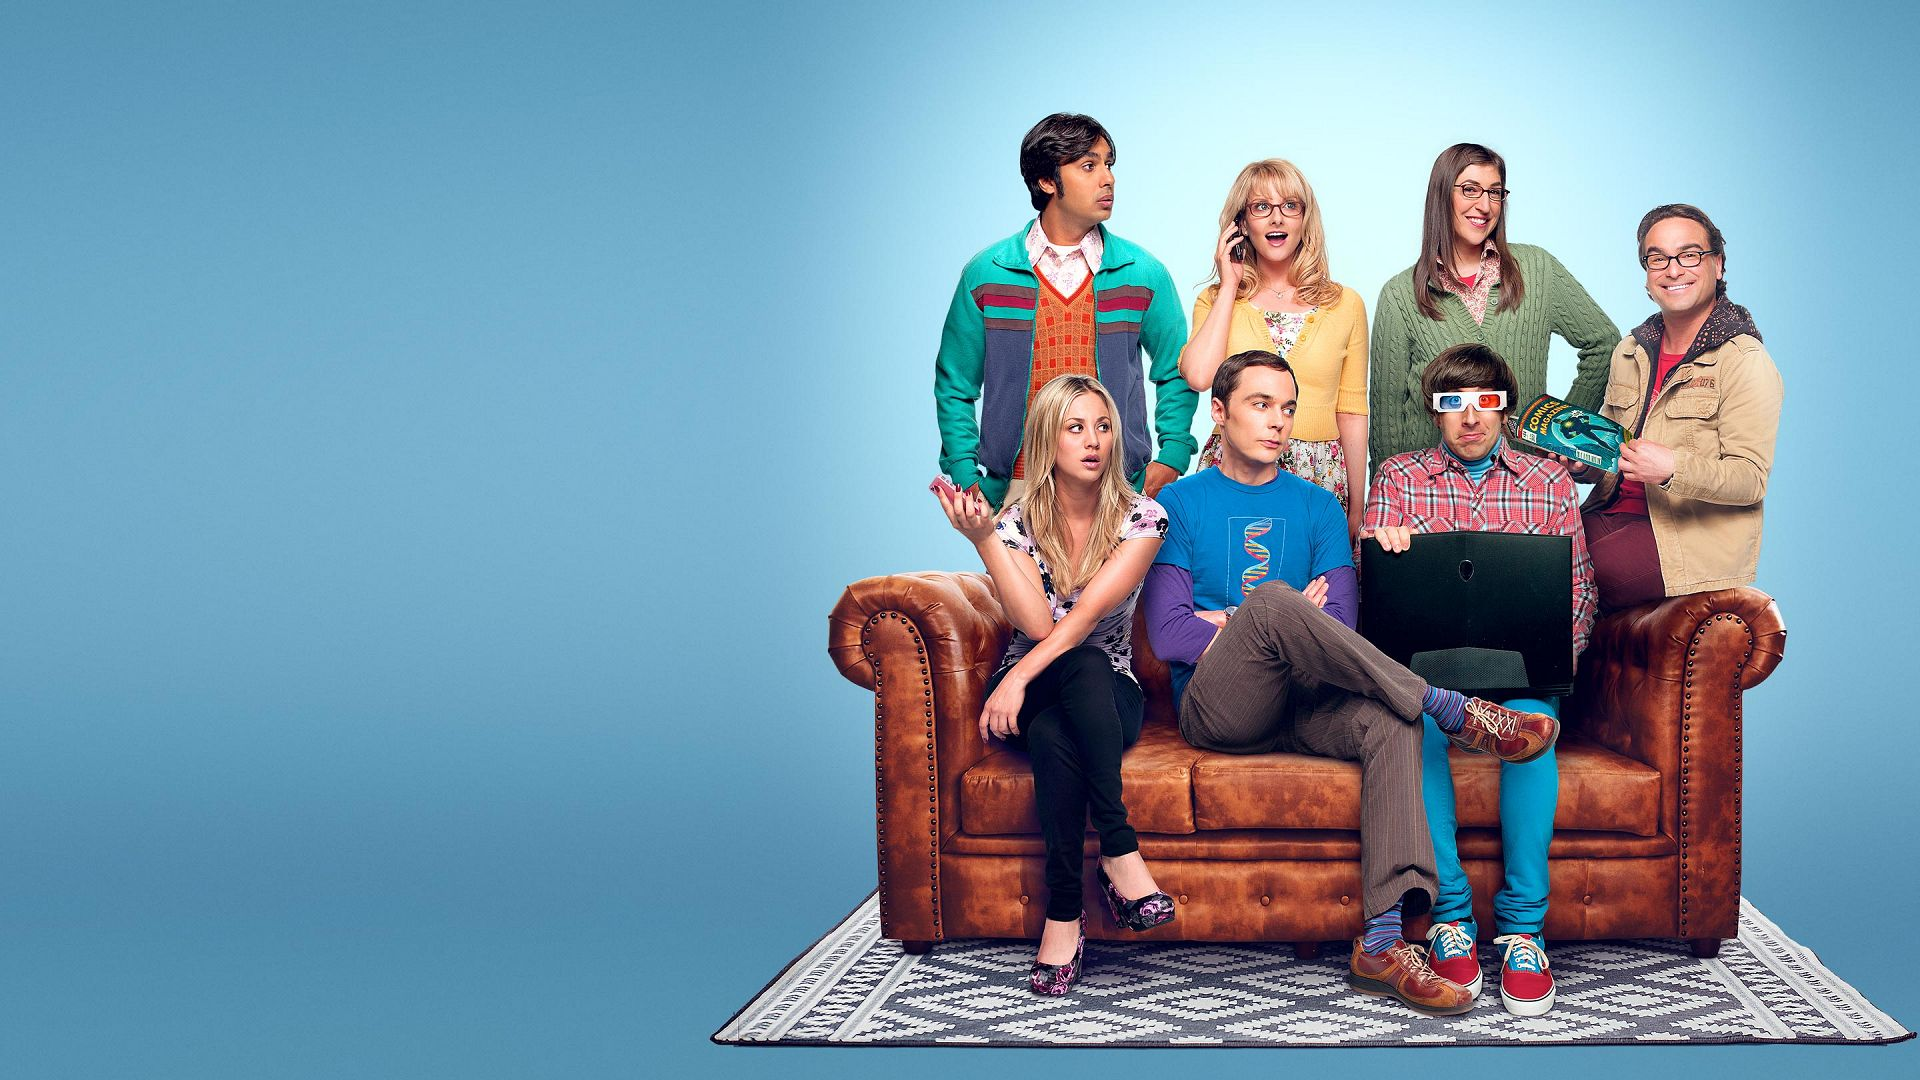 Free Download The Big Bang Theory Official Site Watch The Final Season On Cbs 1920x1080 For Your Desktop Mobile Tablet Explore 15 The Big Bang Theory 2019 Wallpapers The